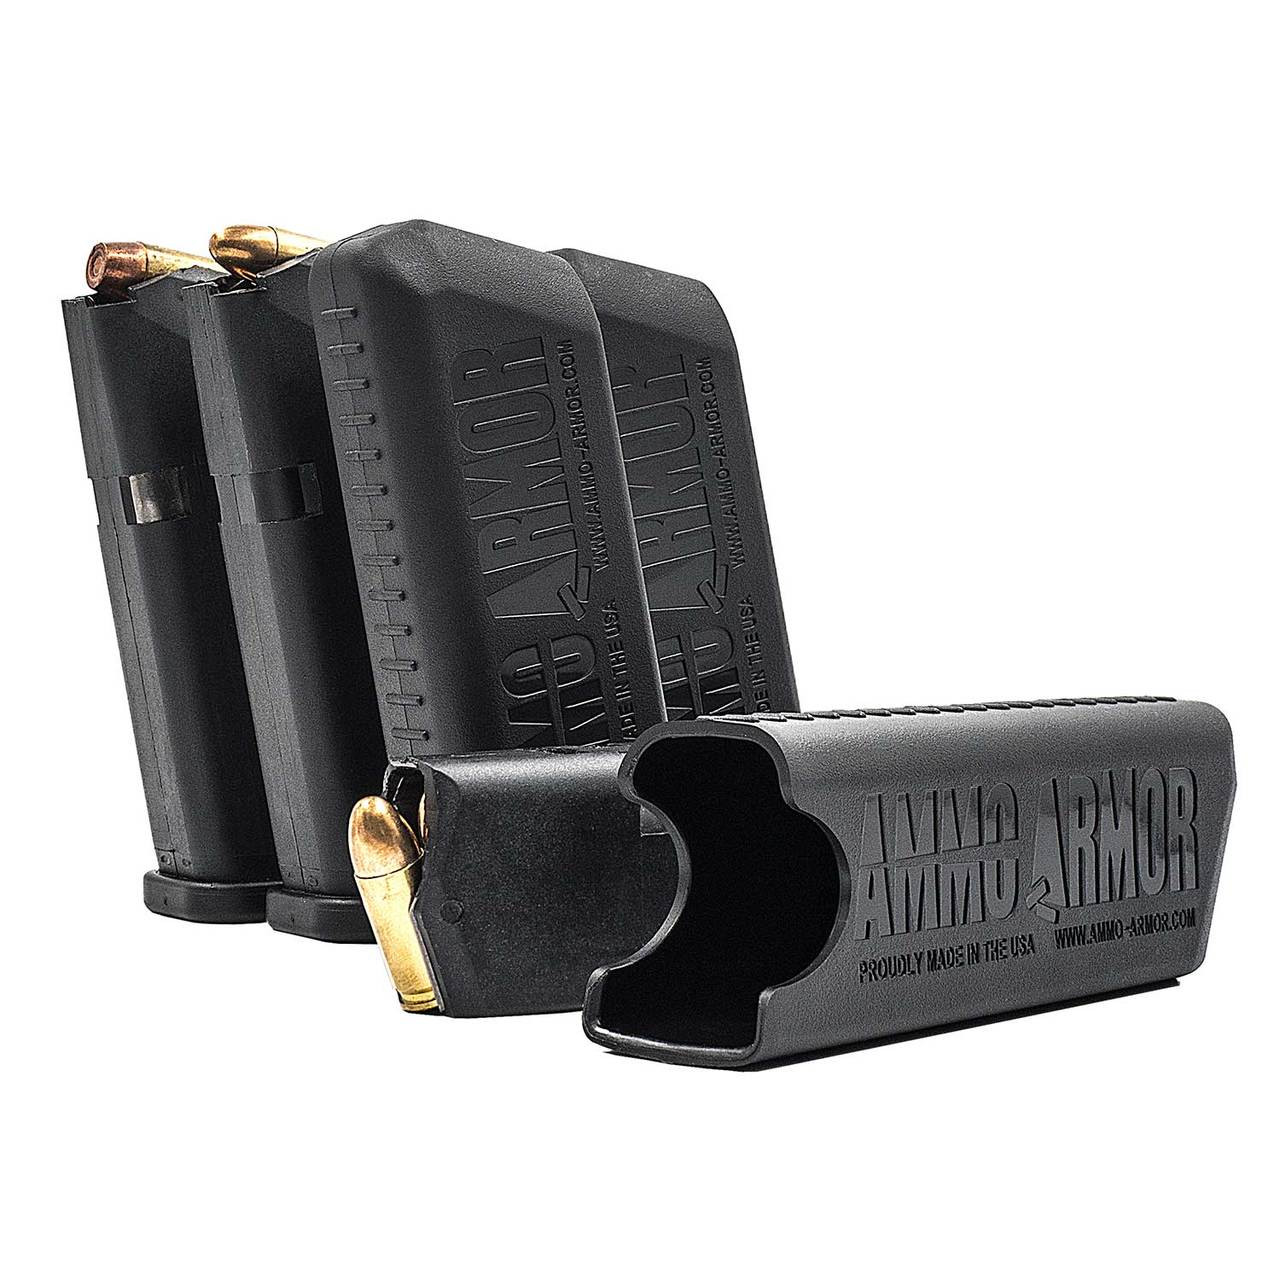 Glock 22 Magazine Case